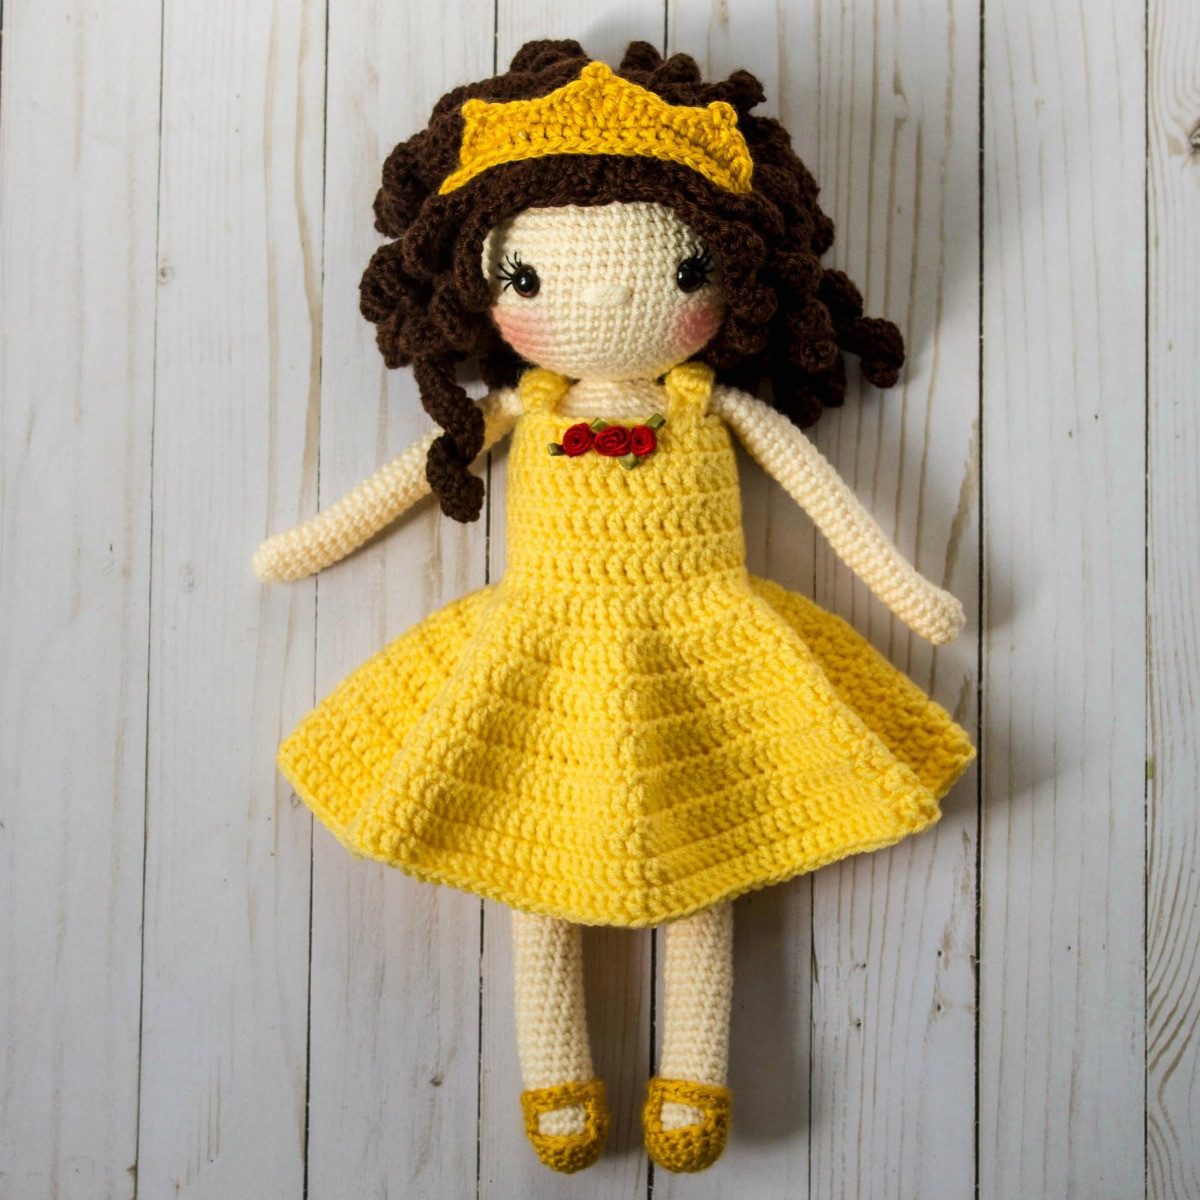 Doll Patterns Beautiful Free Crochet Doll Pattern the Friendly sophie Of Doll Patterns Best Of My Rag Doll Adorable Dolls to Sew